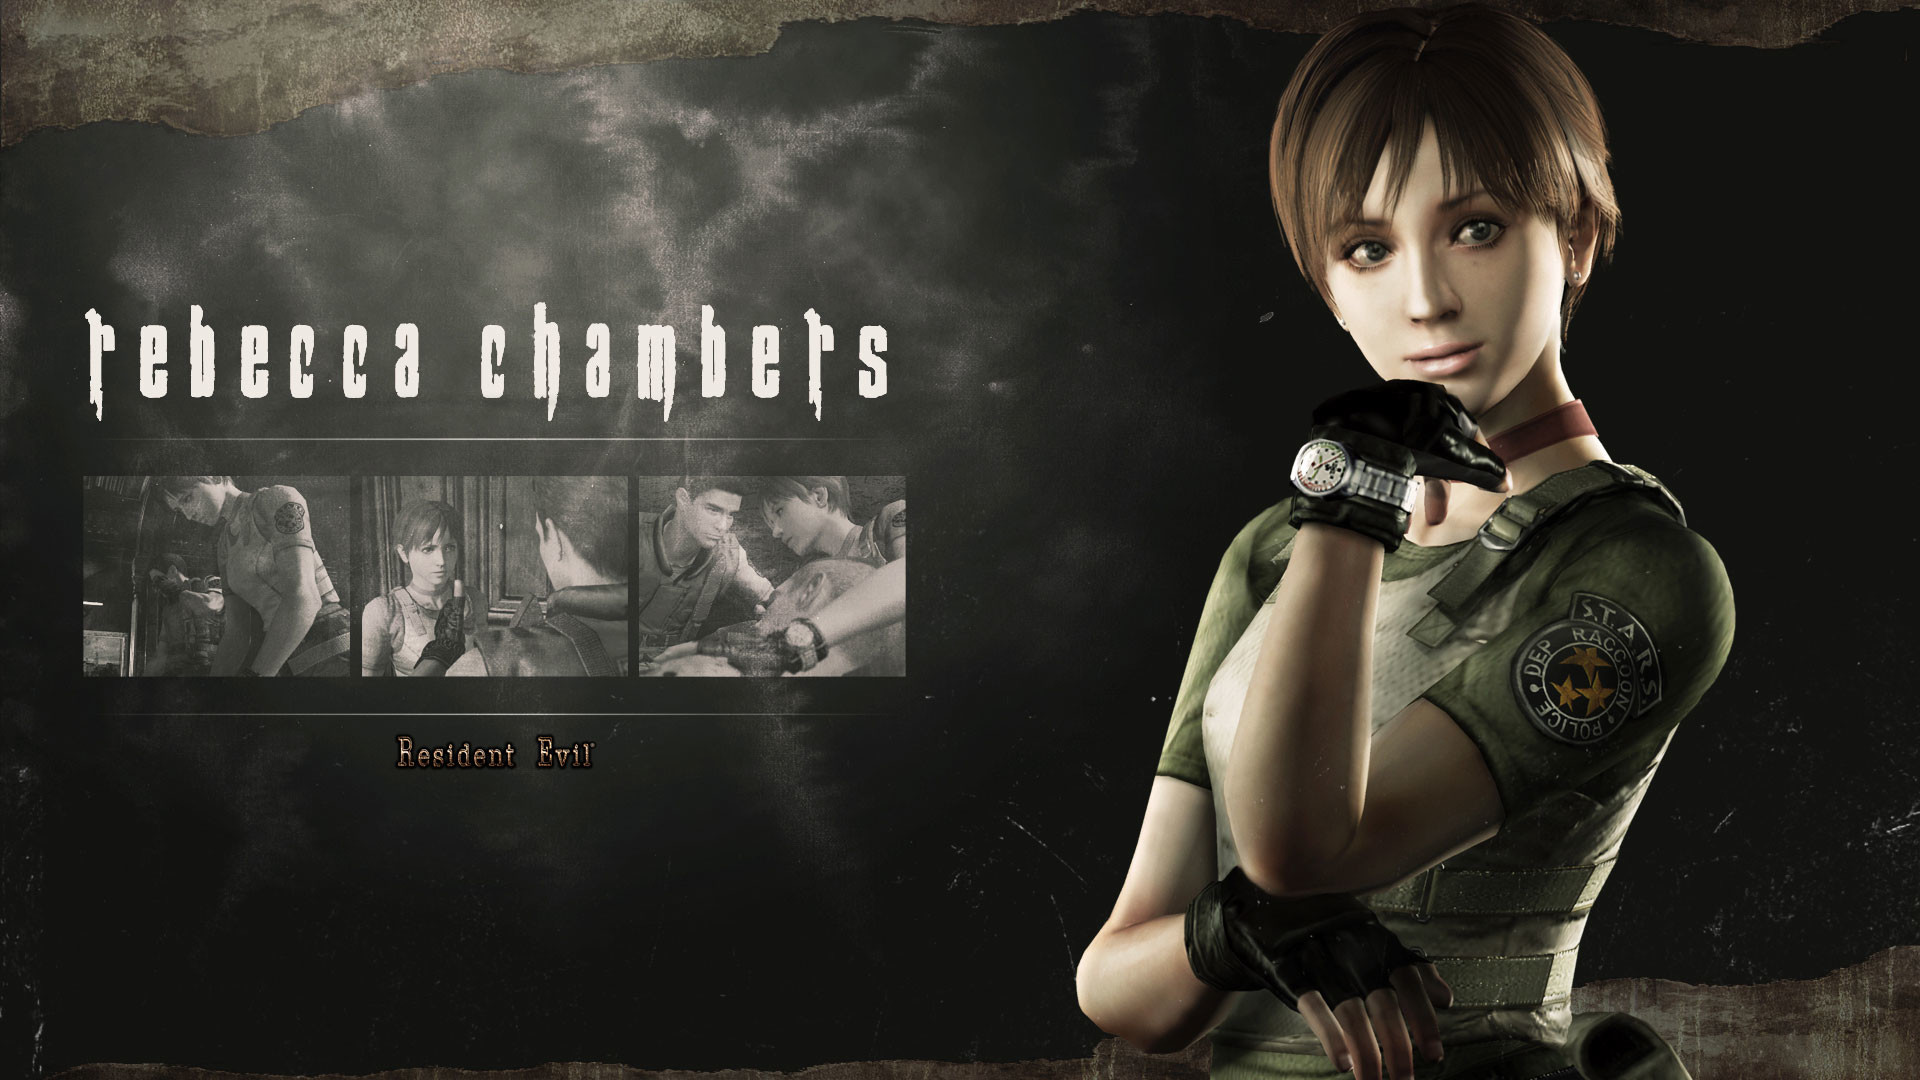 Resident Evil / biohazard HD REMASTER – Rebecca Chambers | Steam Trading  Cards Wiki | FANDOM powered by Wikia